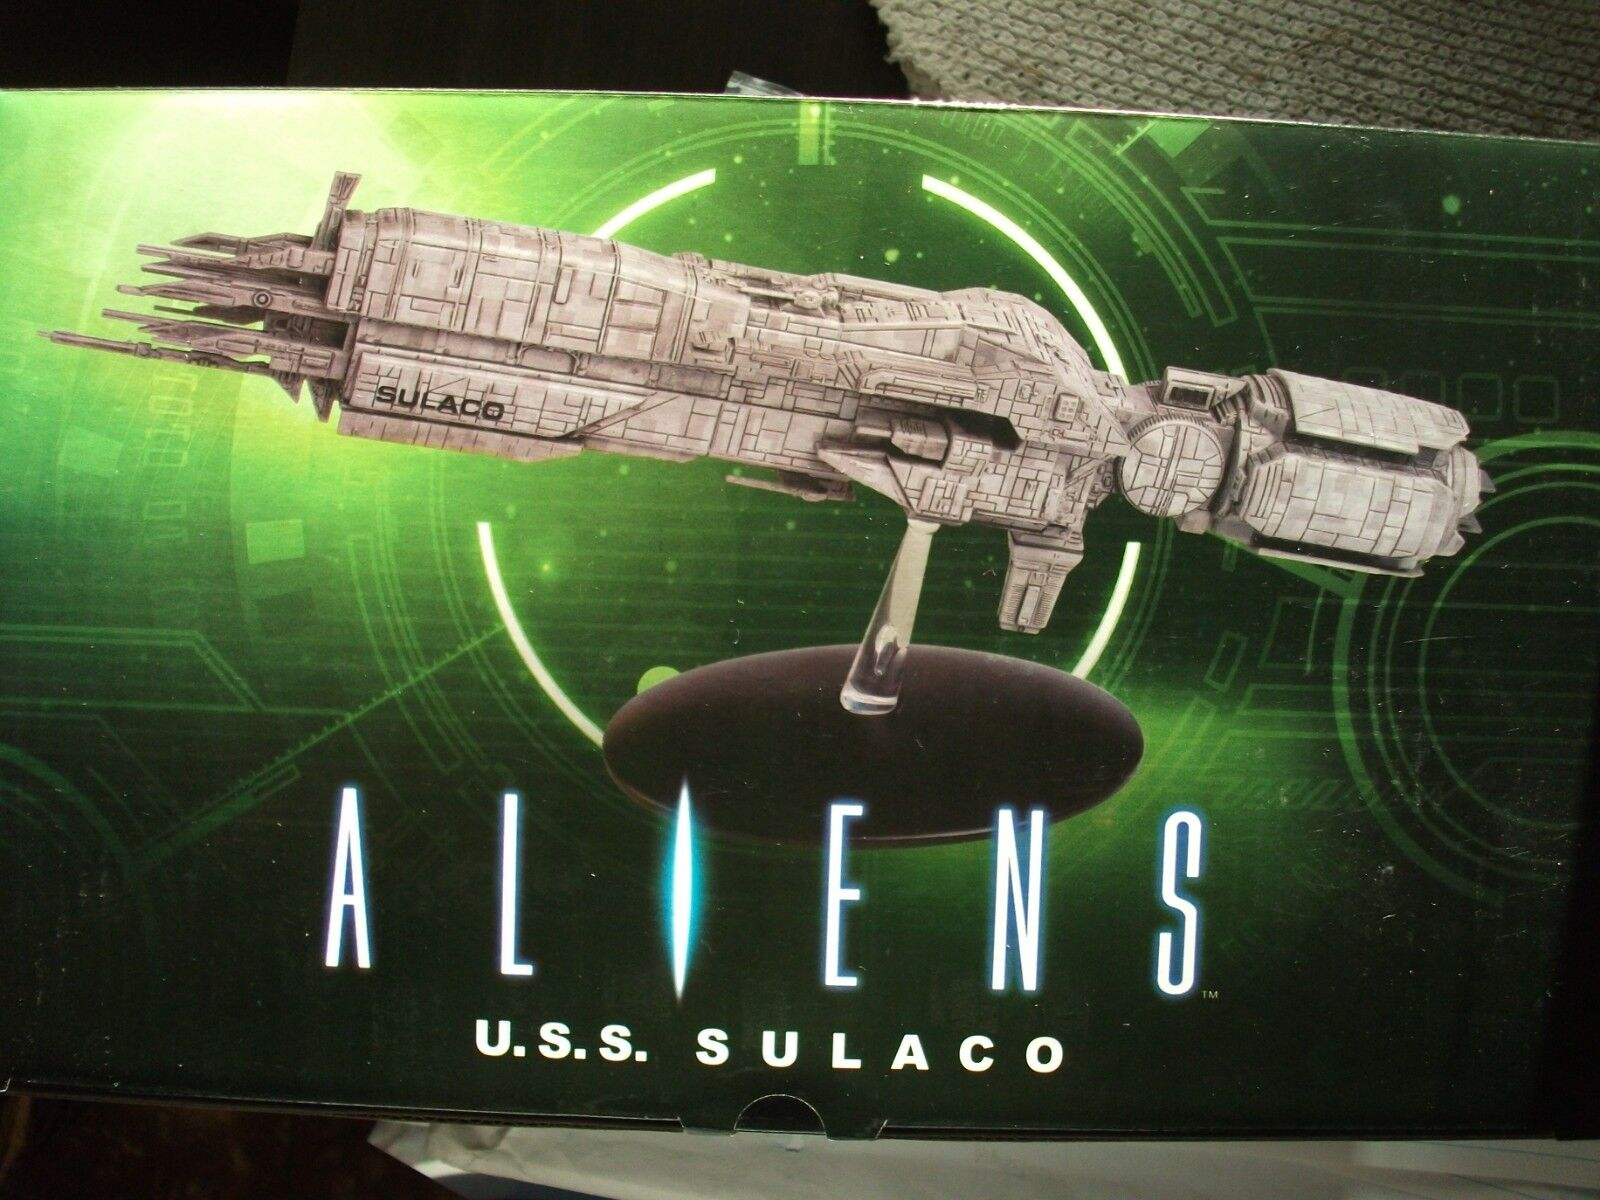 USS SULACO from